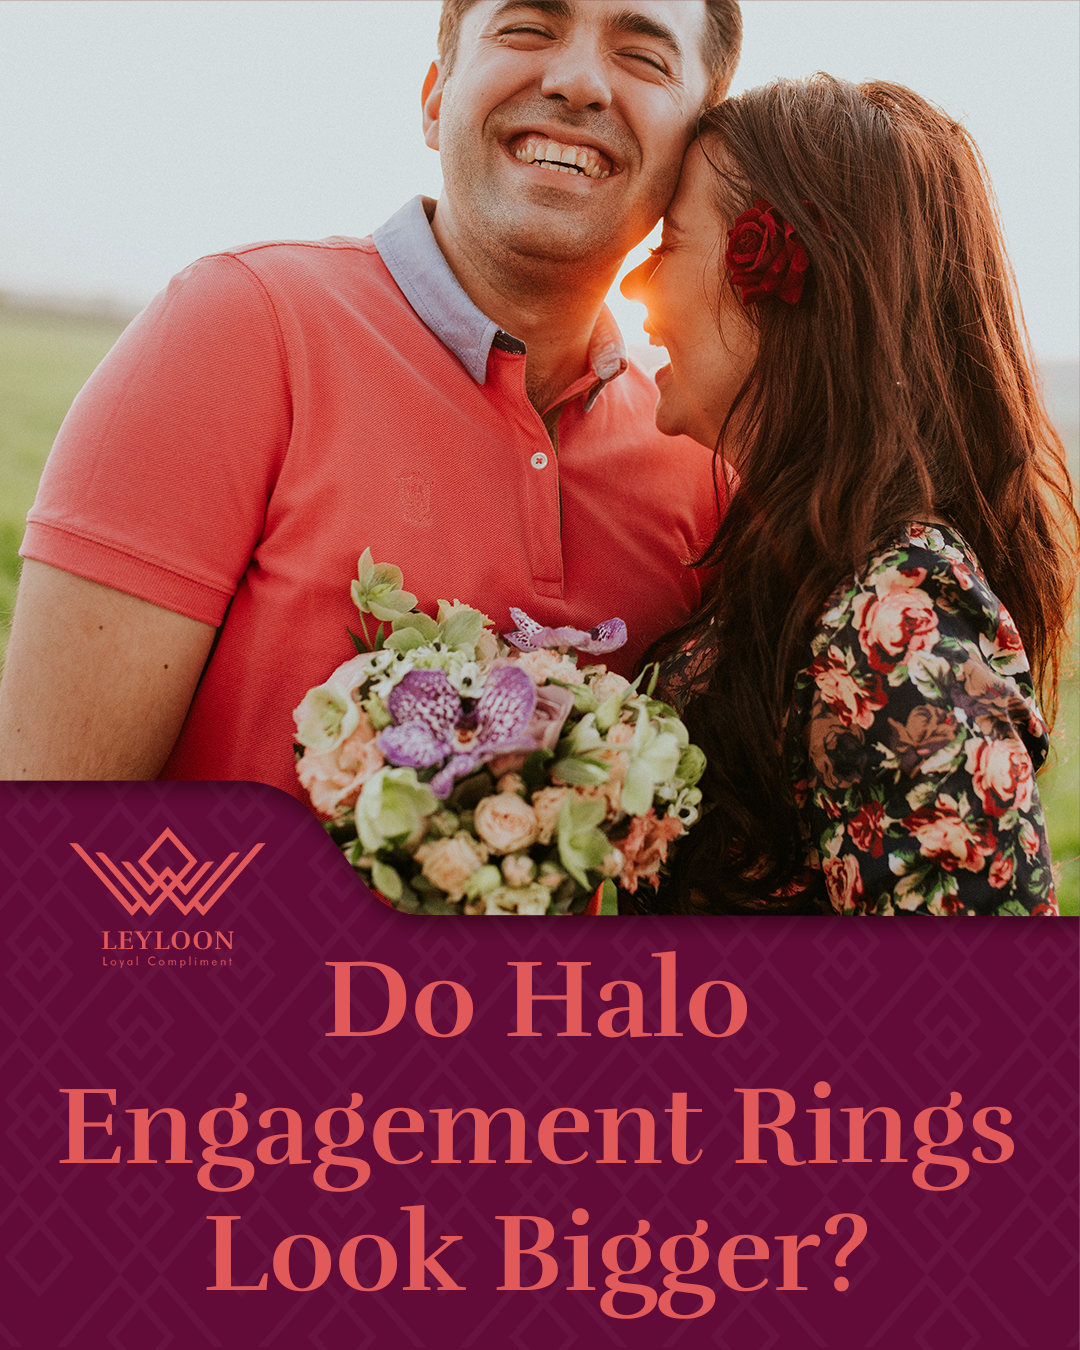 Do Halo Engagement Rings Look Bigger?